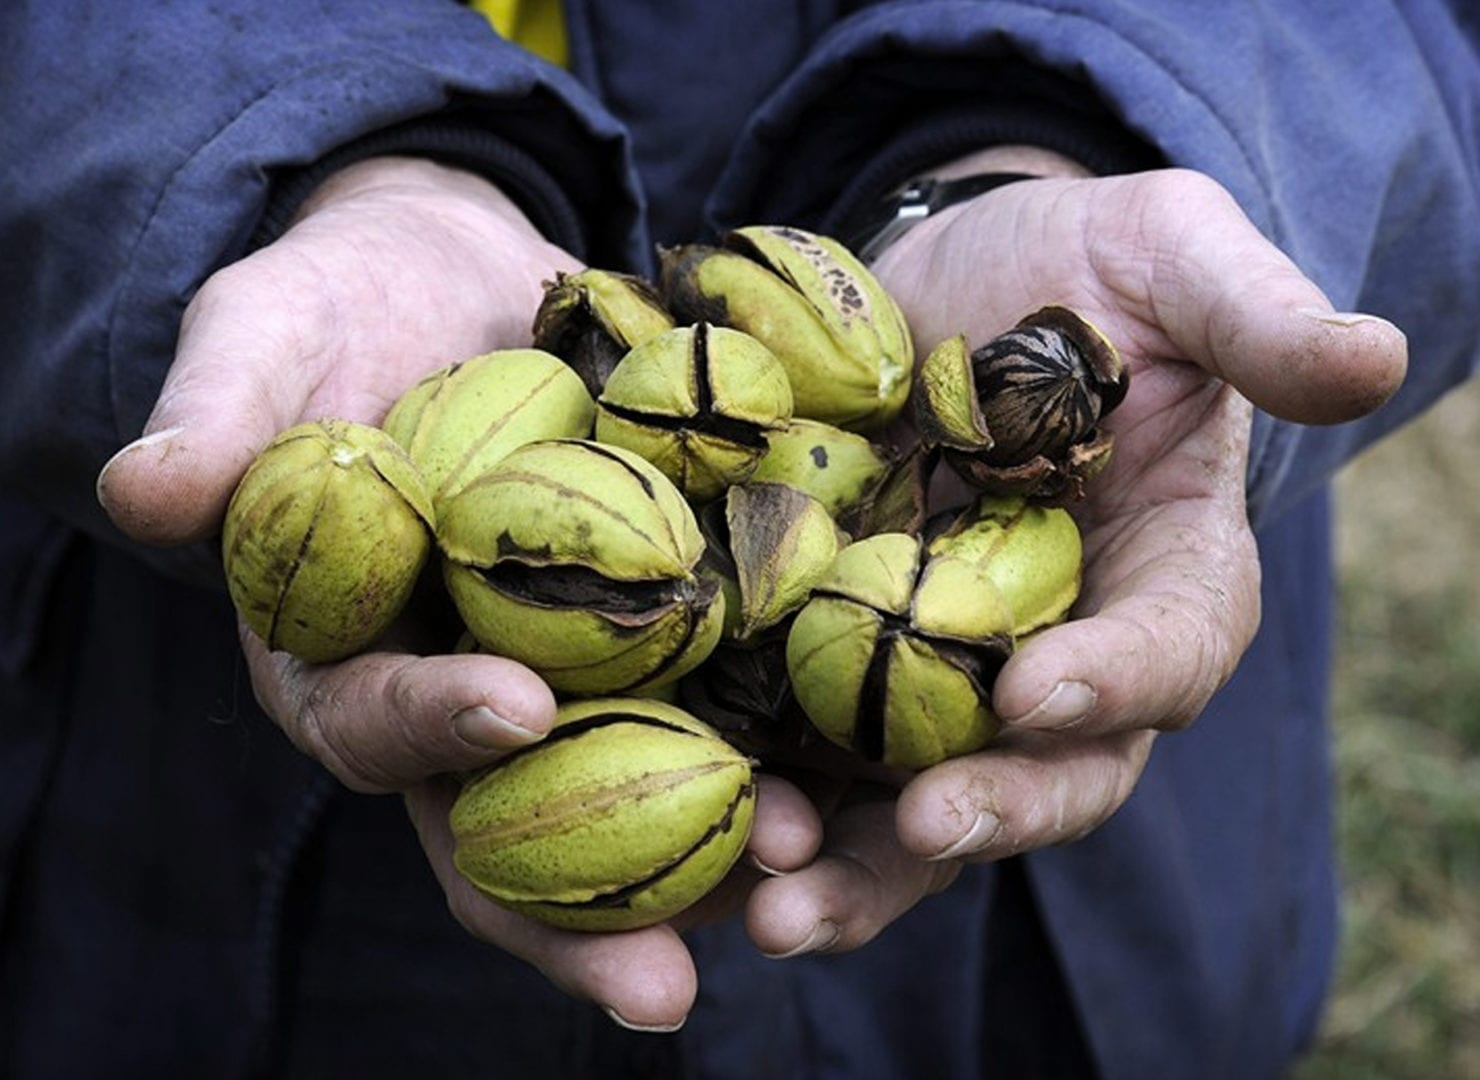 Hands holding pecans from pecan trees for sale